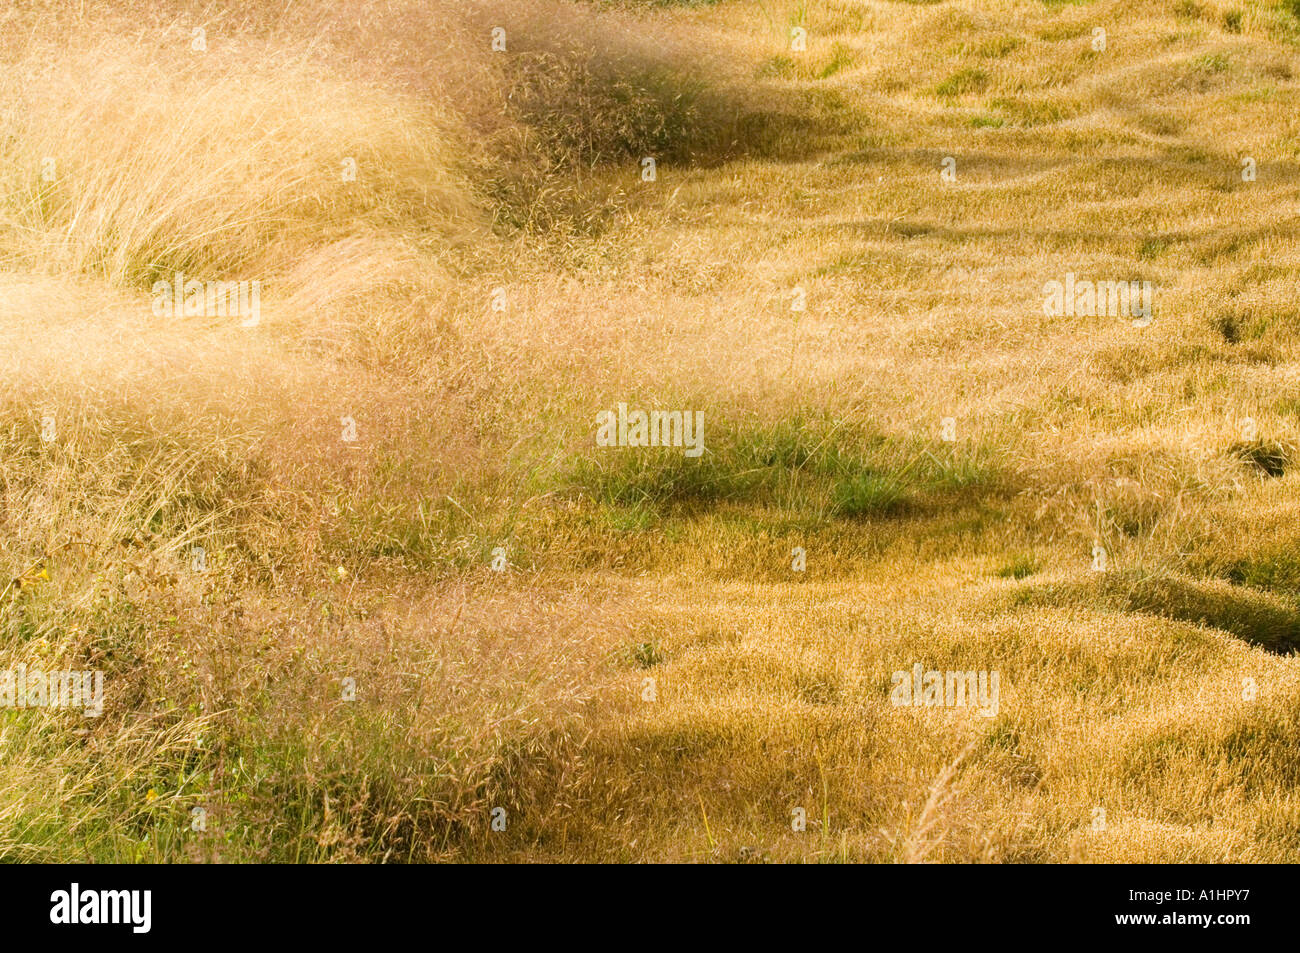 Grasses in volcanically active meadow, Yellowstone National Park, Wyoming, USA - Stock Image